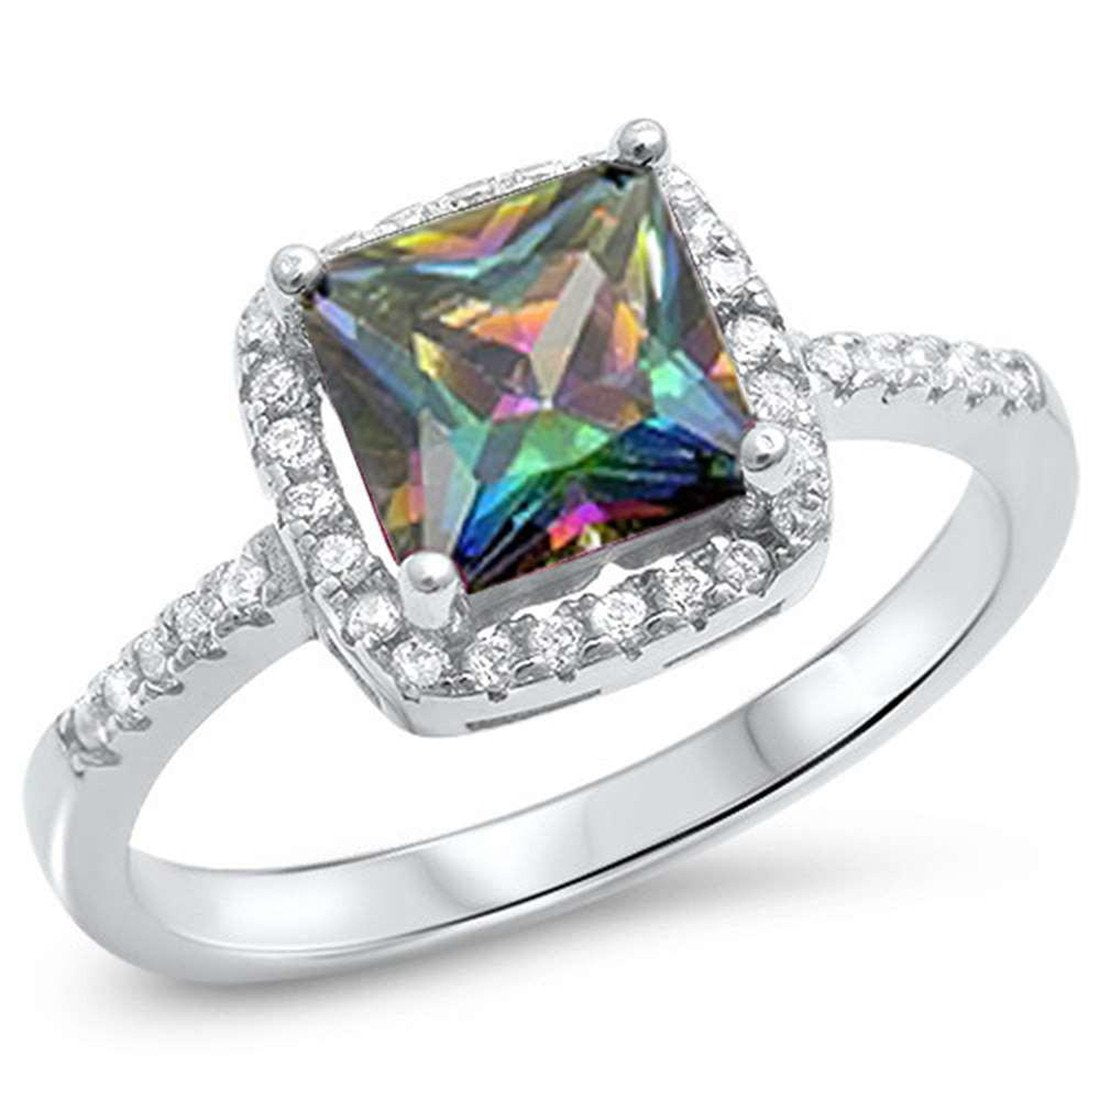 Solitaire Engagement Ring Simulated Rainbow CZ 925 Sterling Silver